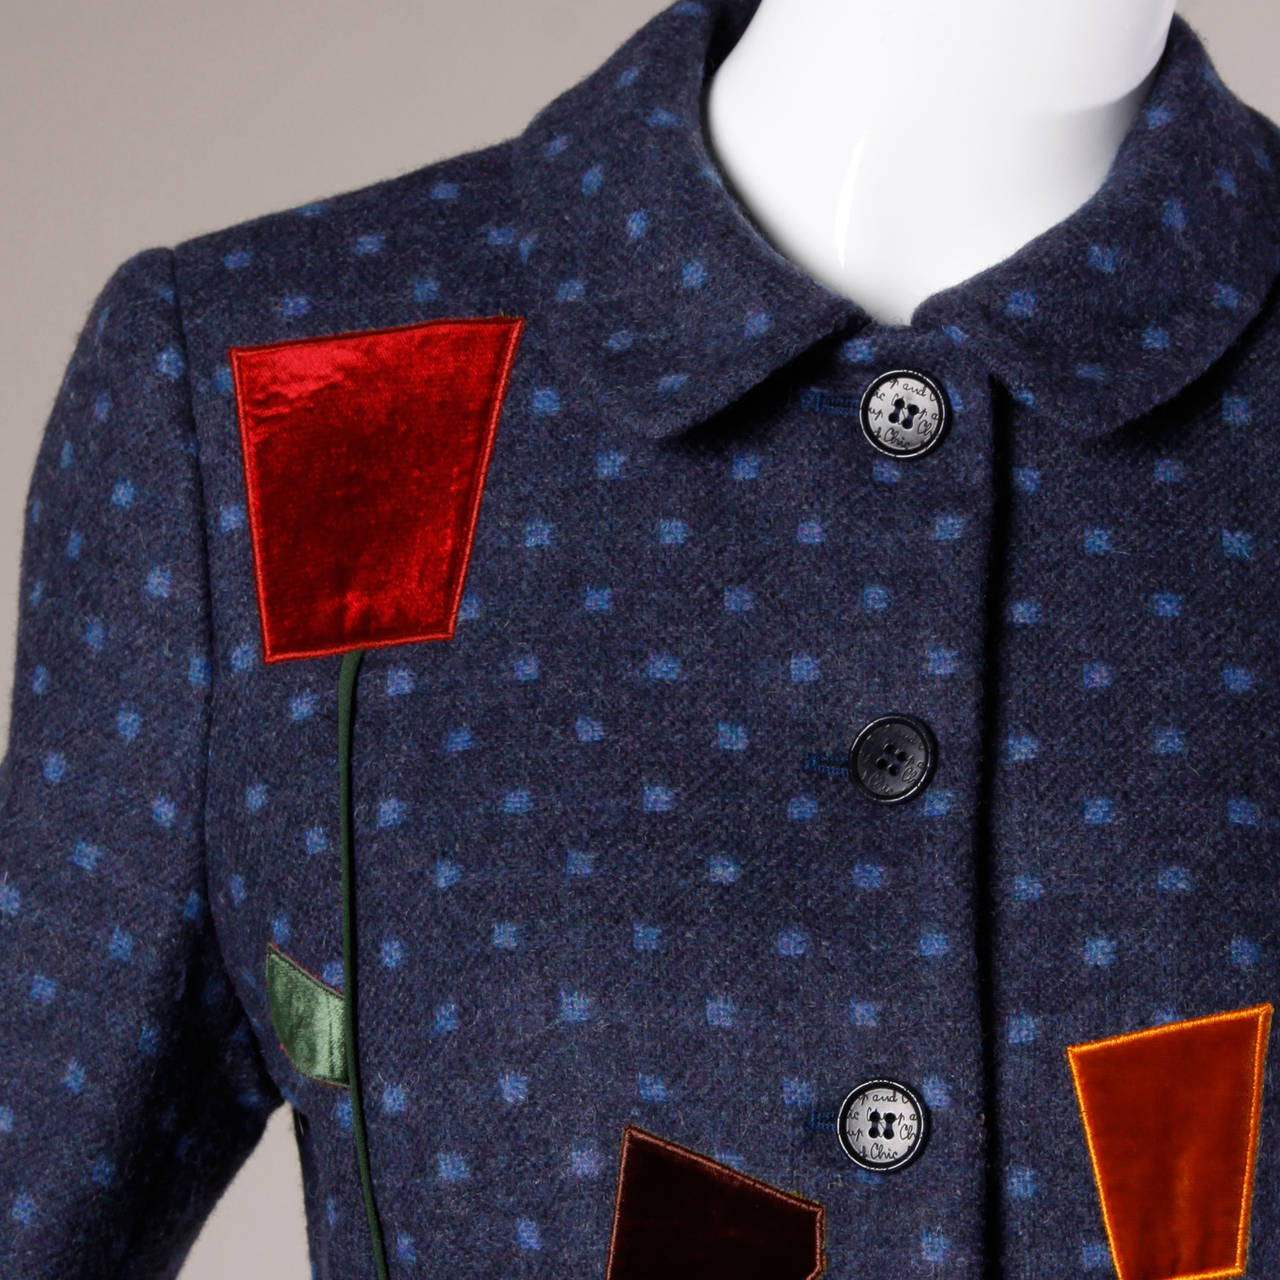 Moschino Vintage 90s Polka Dot Patchwork Skirt + Jacket Suit Ensemble For Sale 1